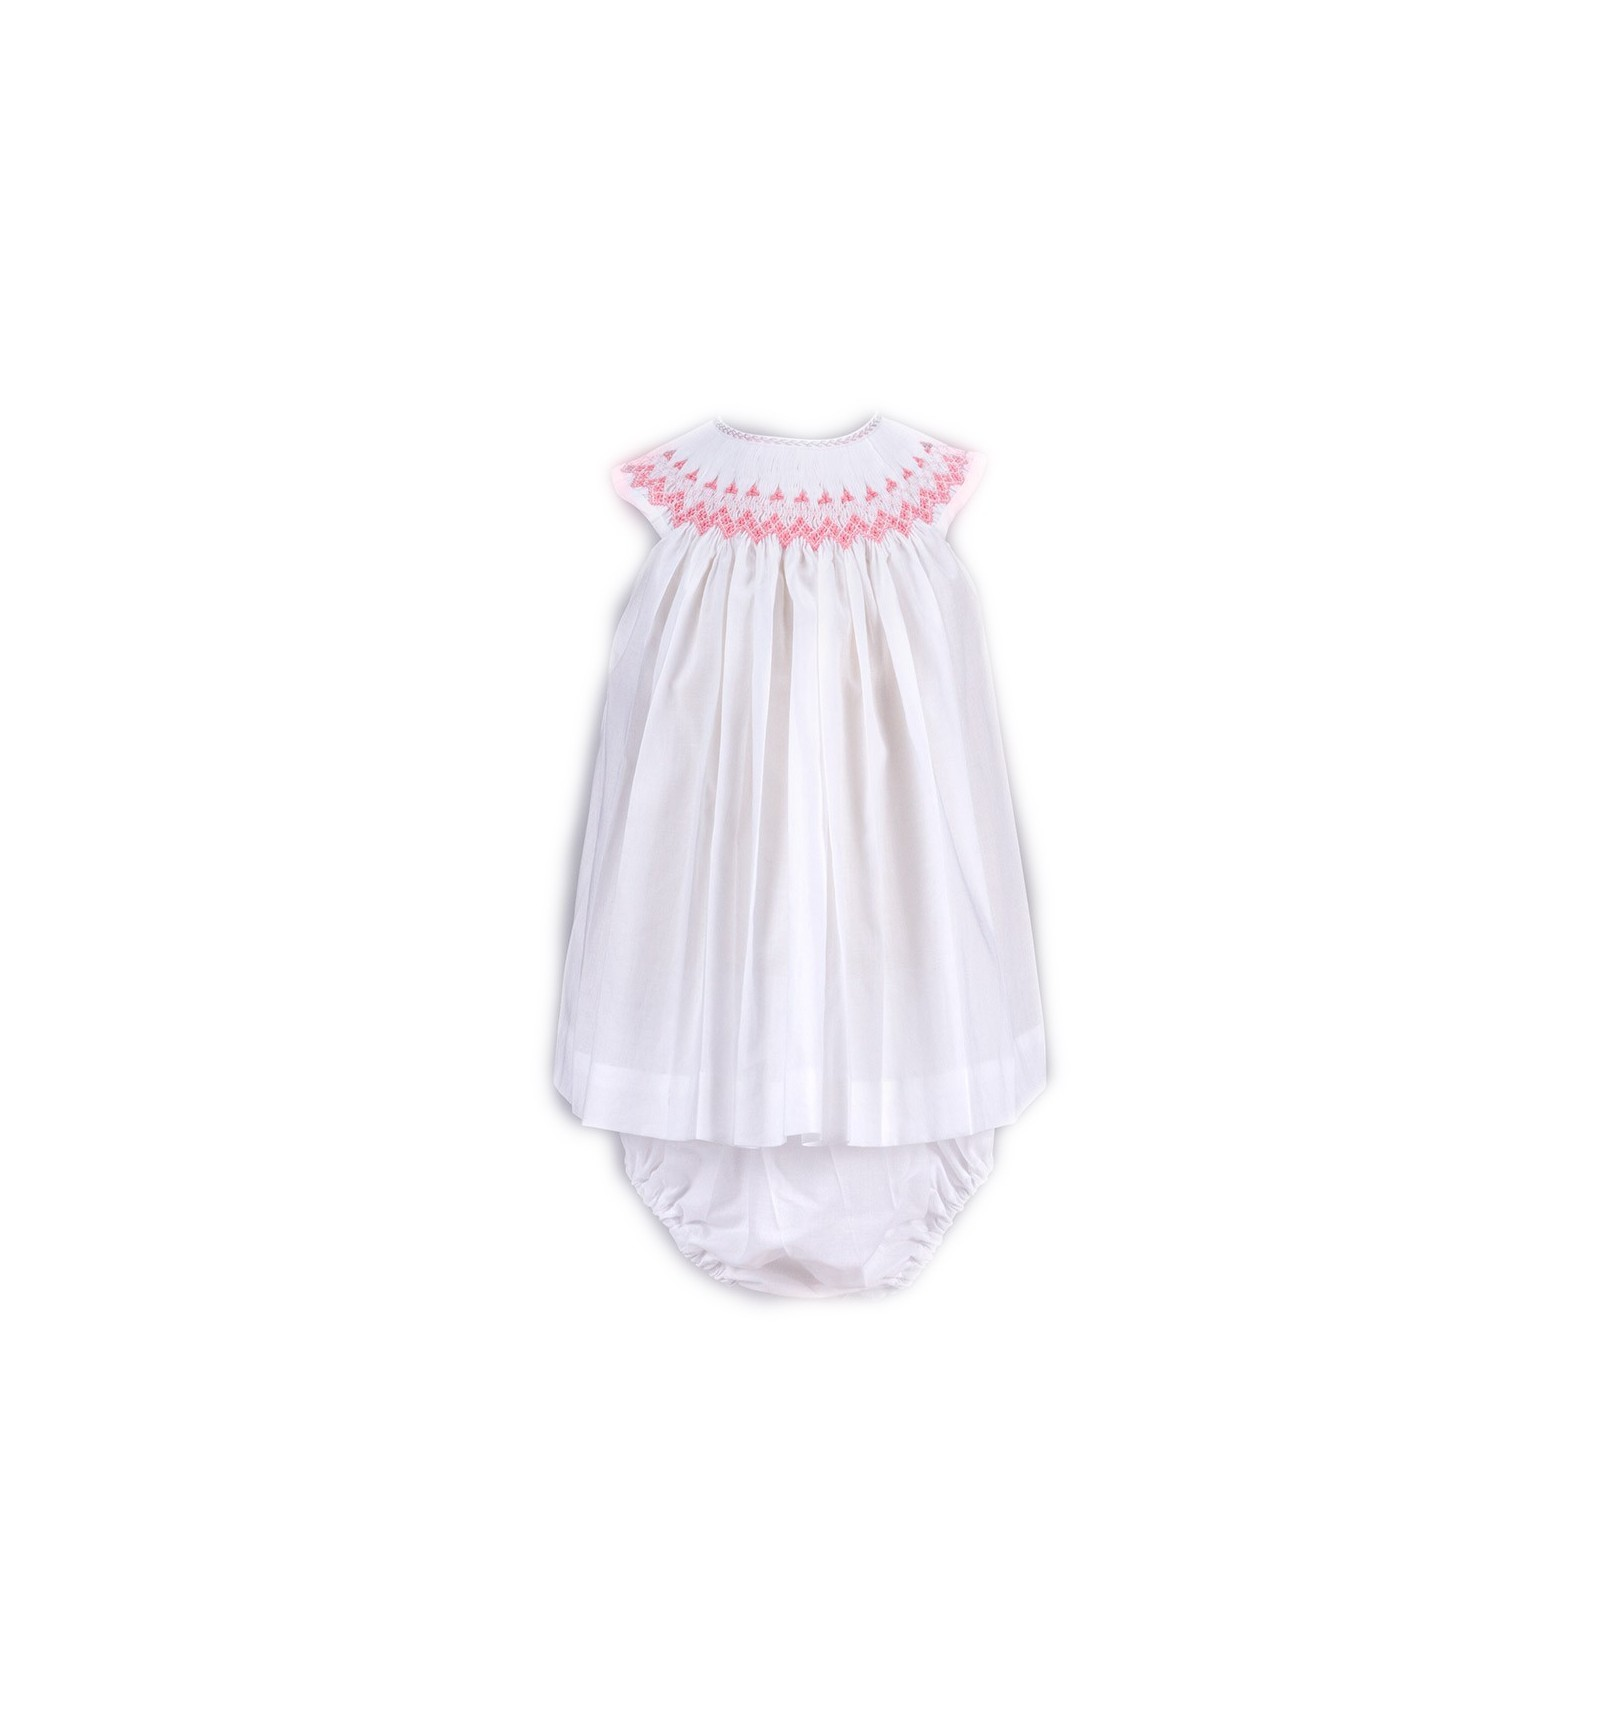 Classic Baby Clothes Uk Newest and Cutest Baby Clothing Collection